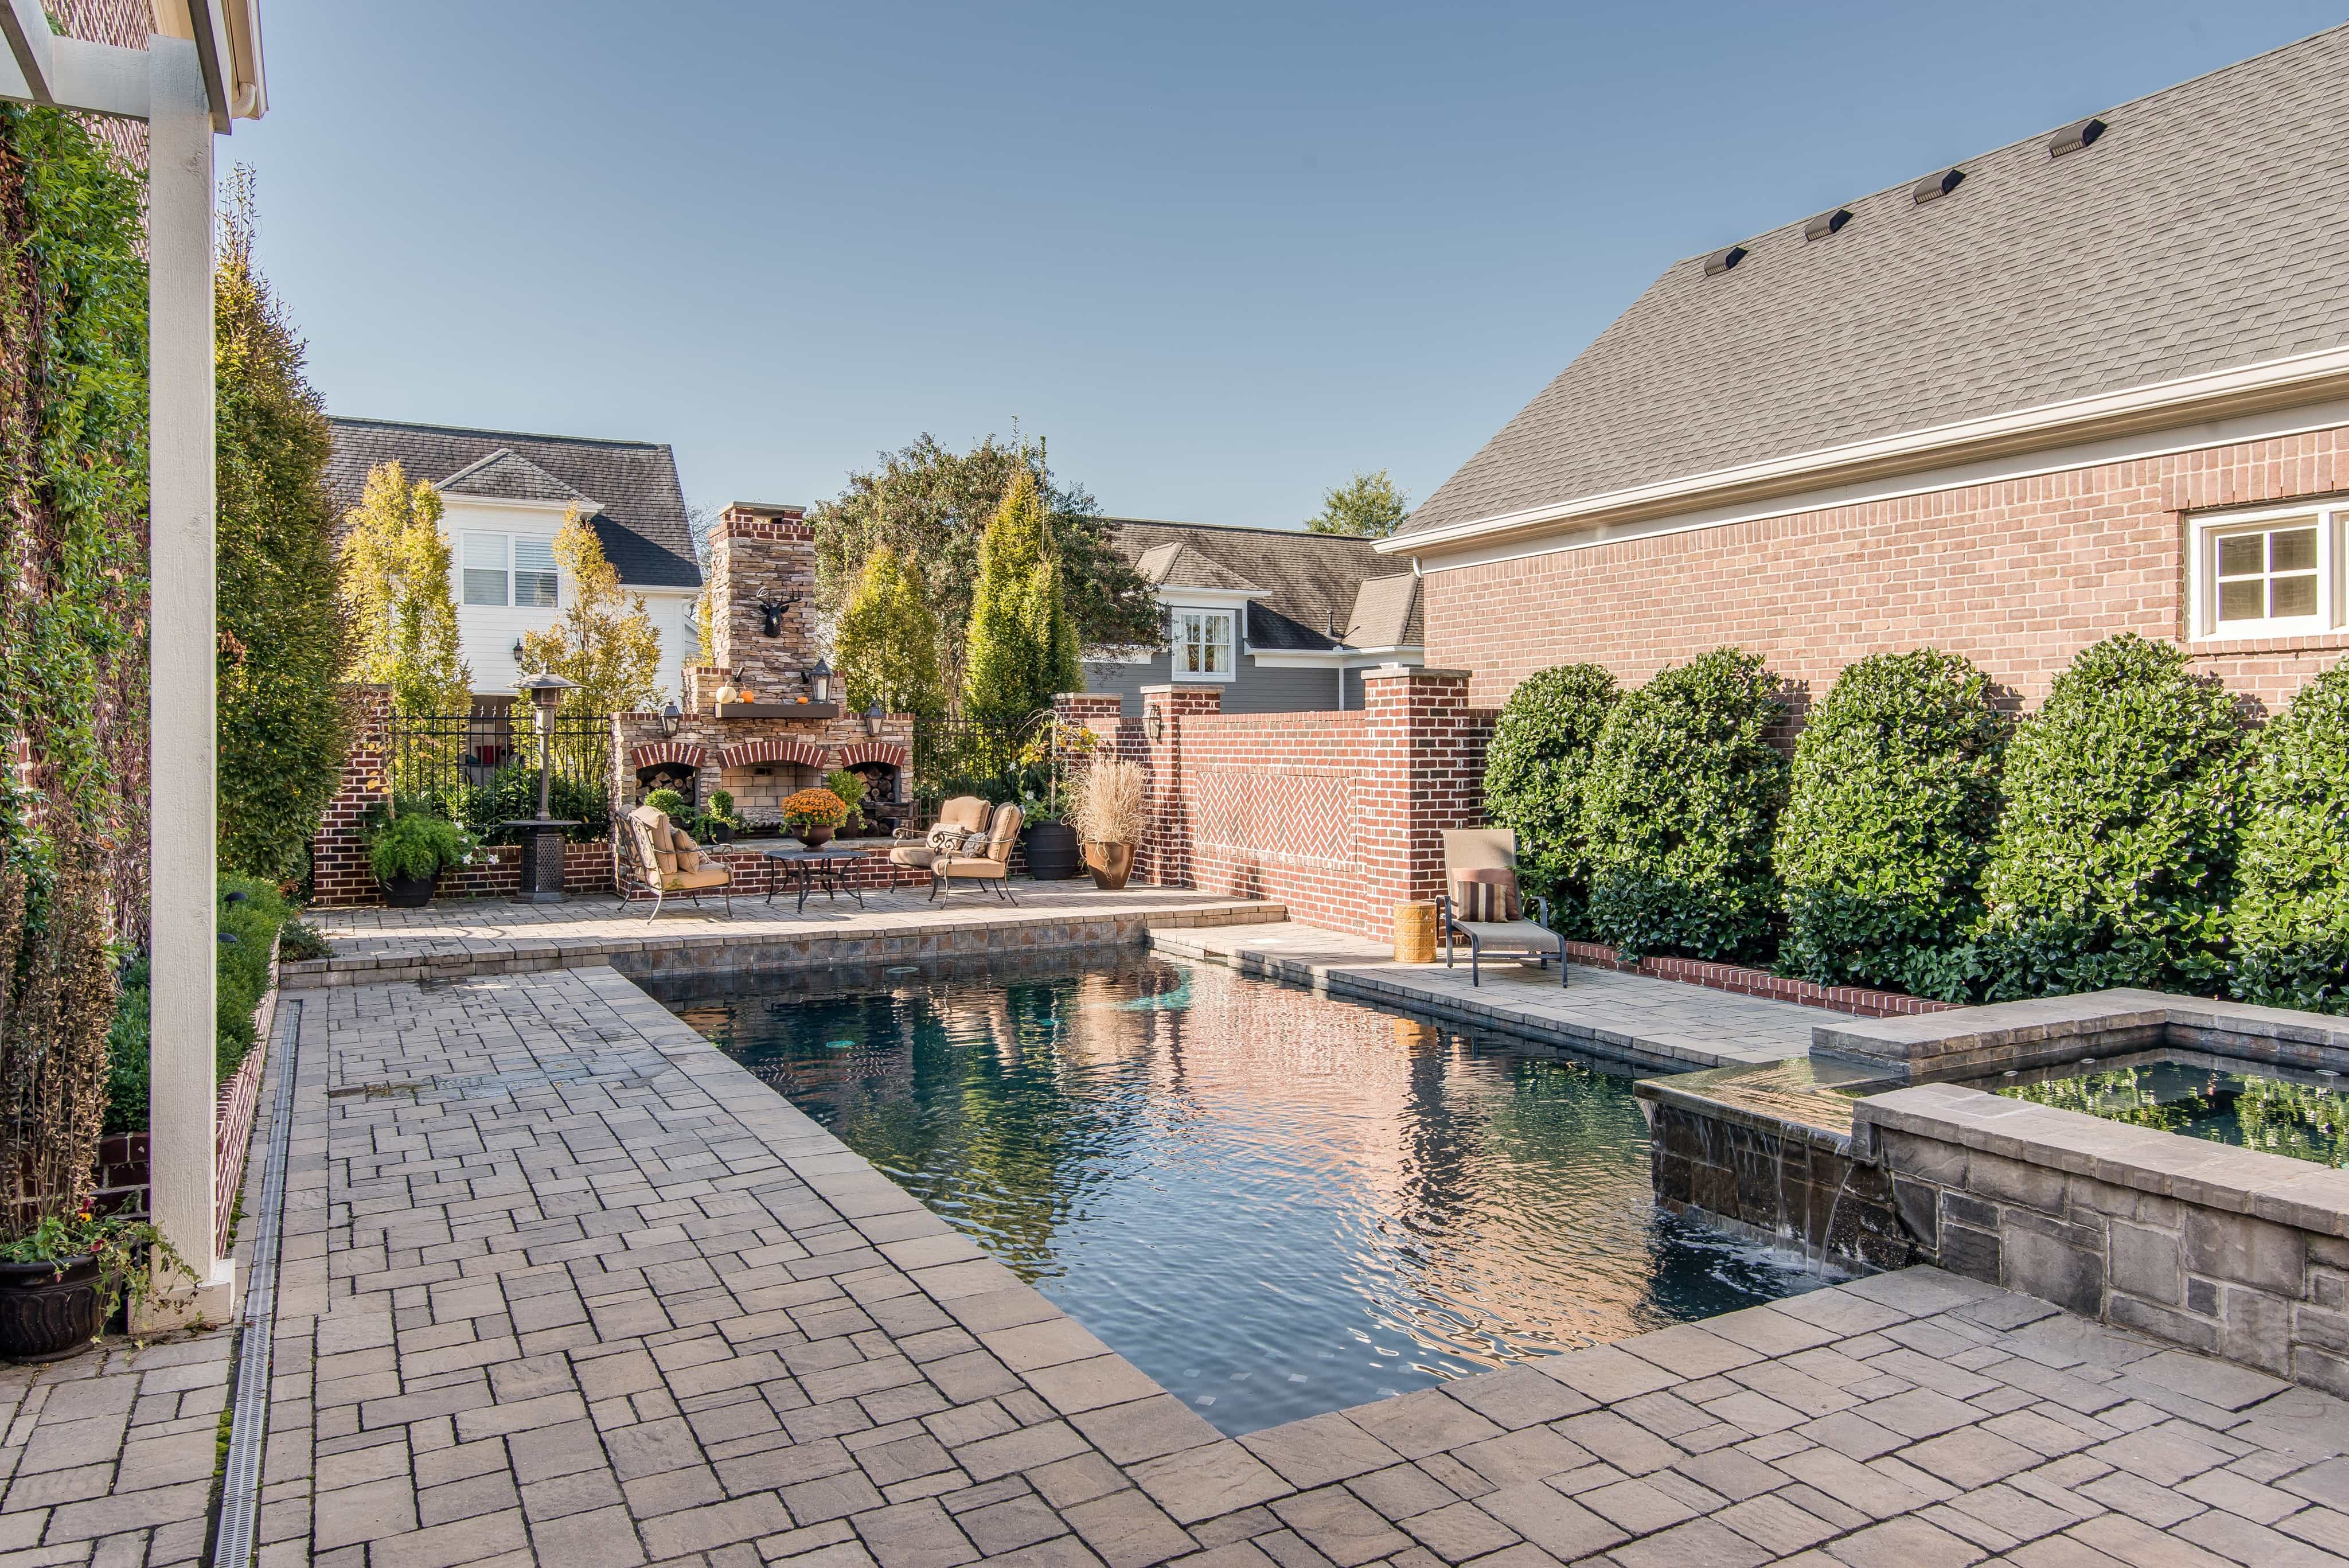 Stone And Brick Outdoor Patio With Swimming Pool (View 9 of 25)